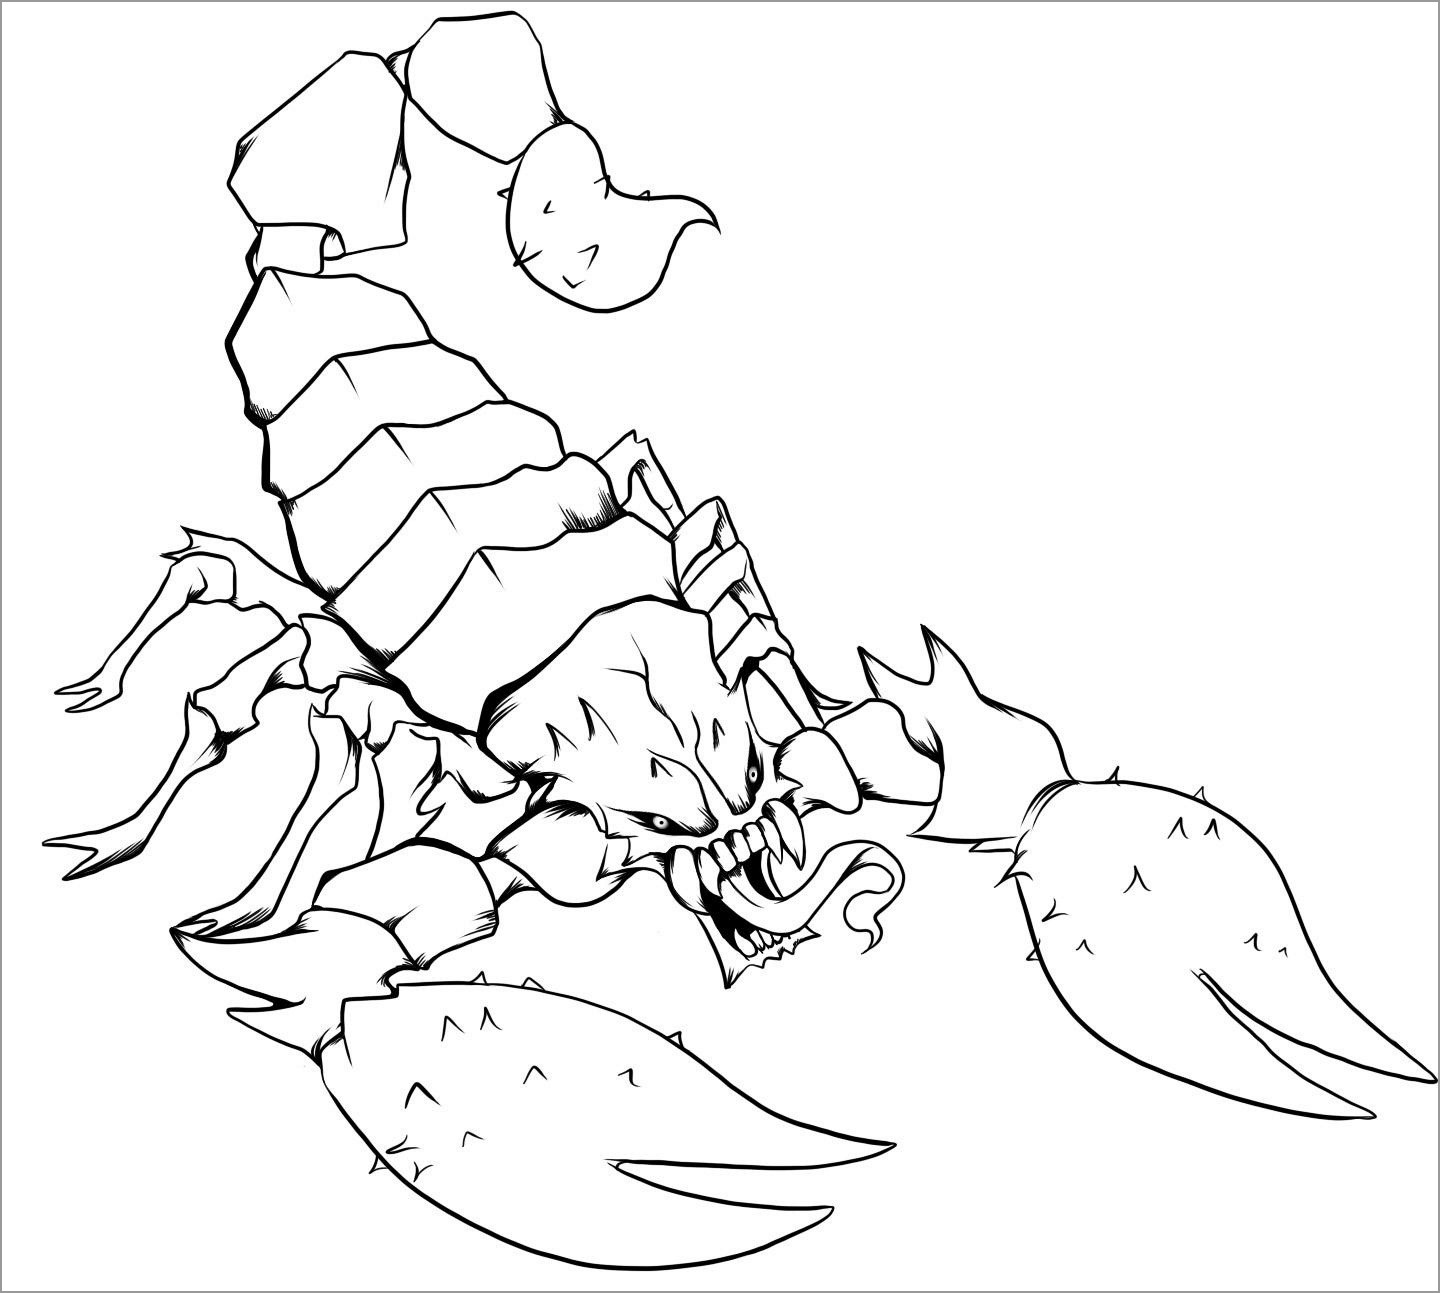 Printable Scorpio Coloring Pages for Kids